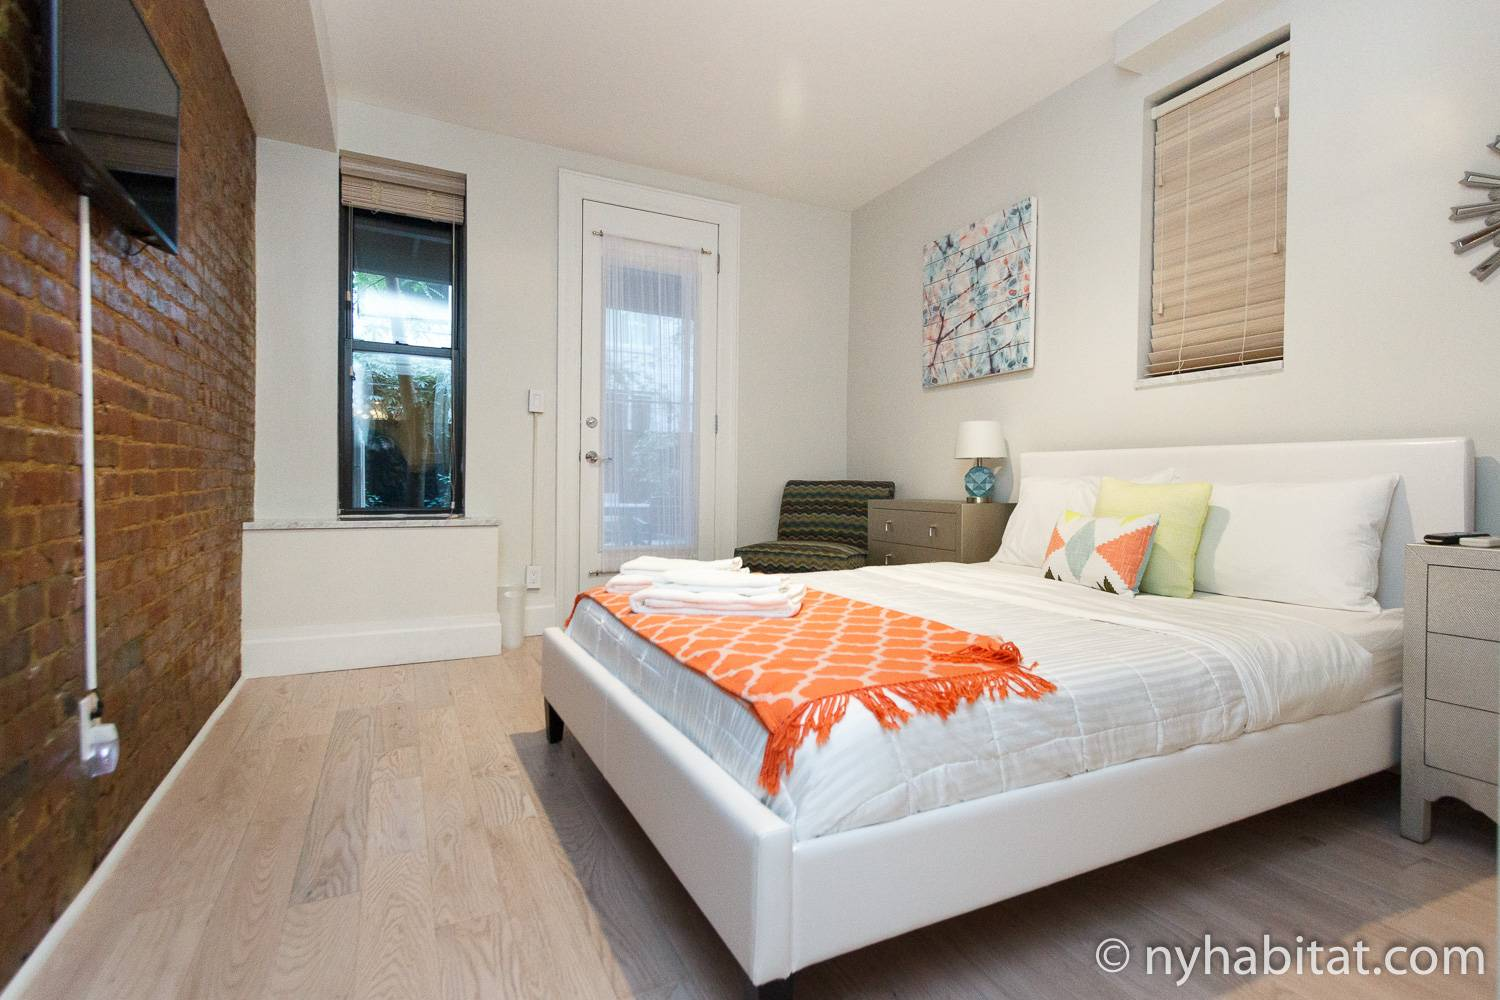 Image of bedroom in NY-16635 with full-sized bed and television.